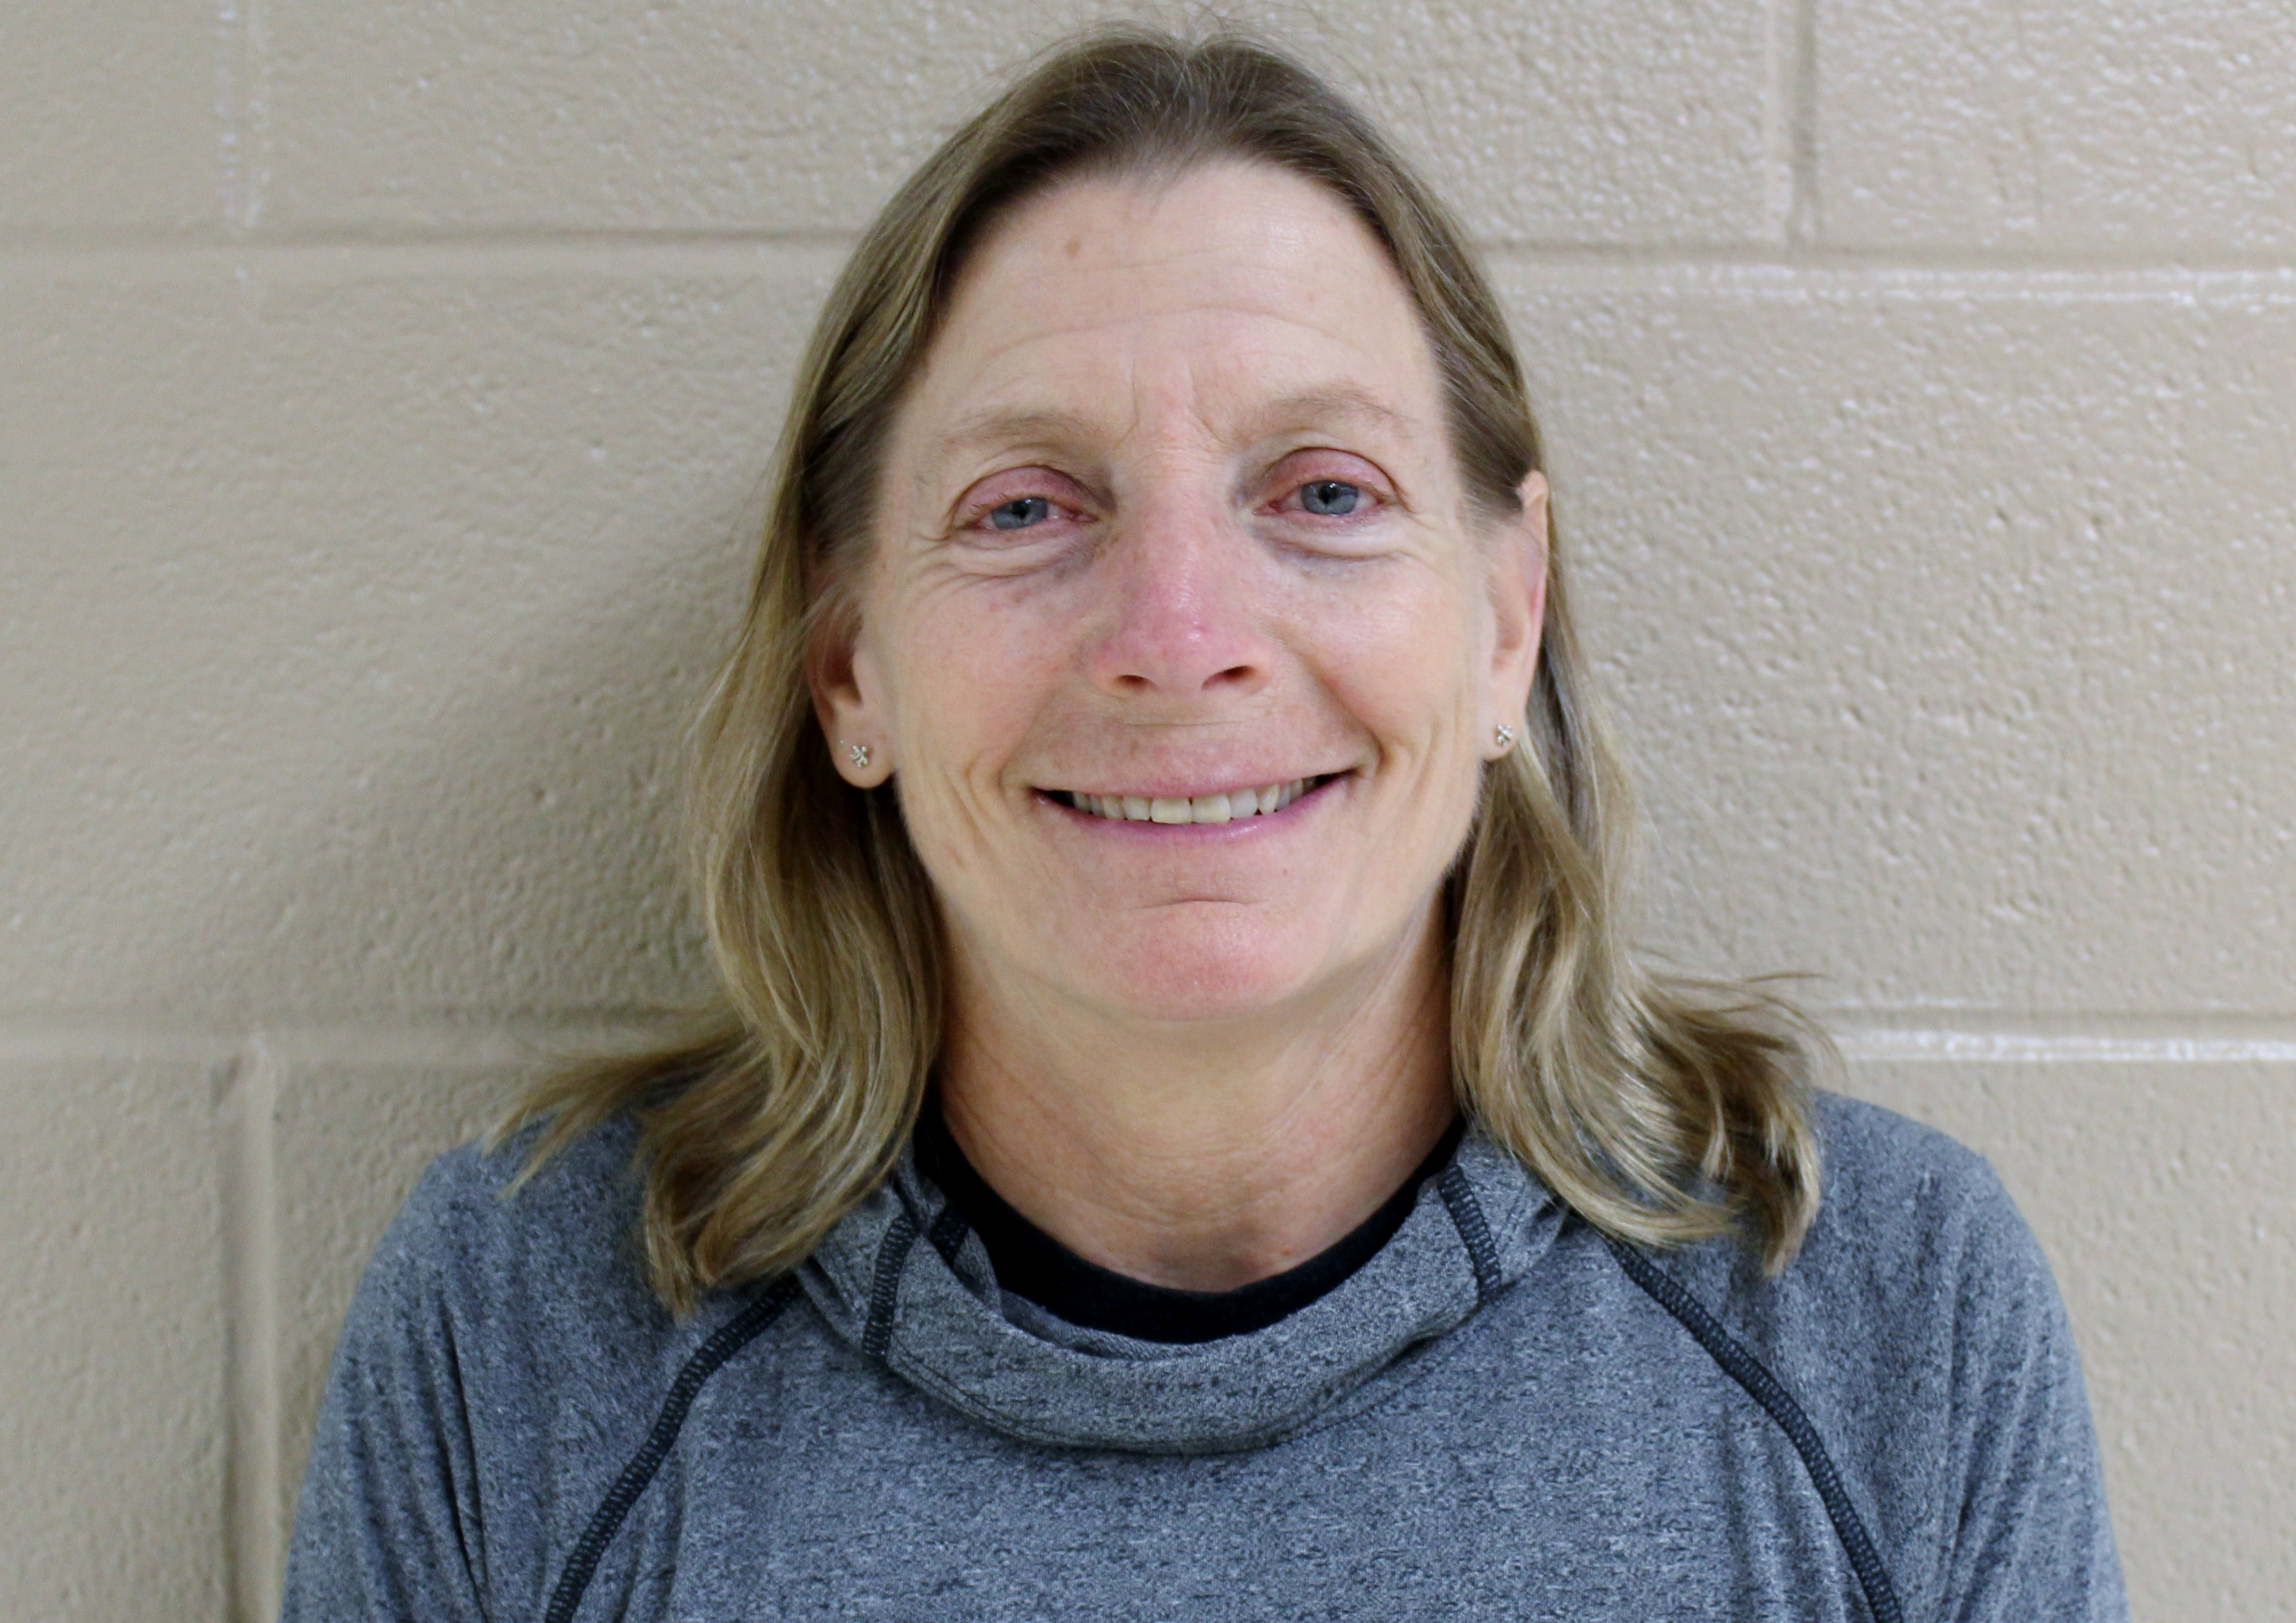 PHSCC Softball Coach Anne Campbell is being inducted into the Illinois Coaches Association's Softball Hall of Fame.